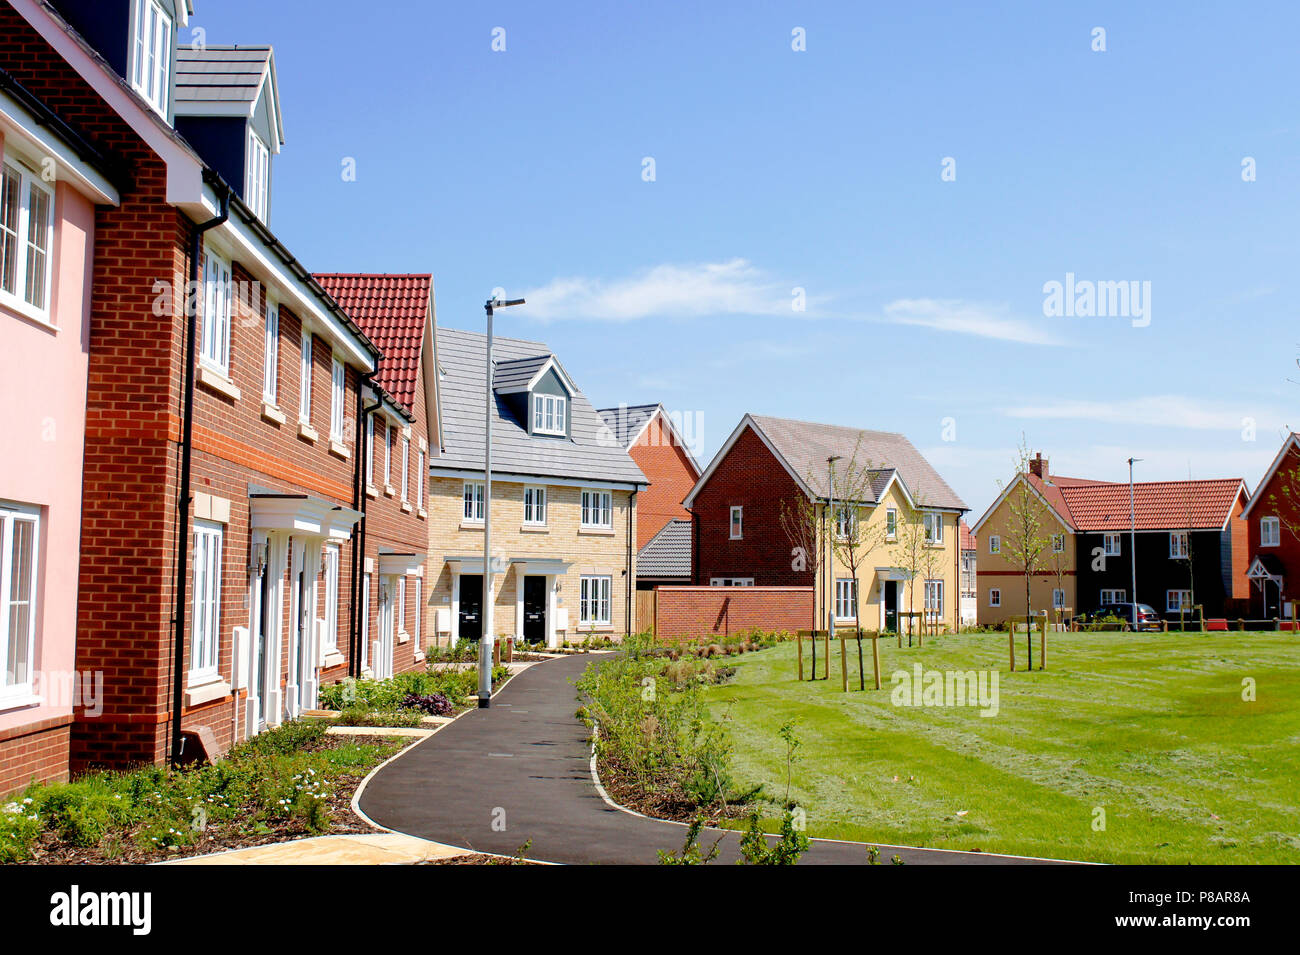 Bury st edmunds uk may 15 2018 new build homes in the larke grange development on a sunny day